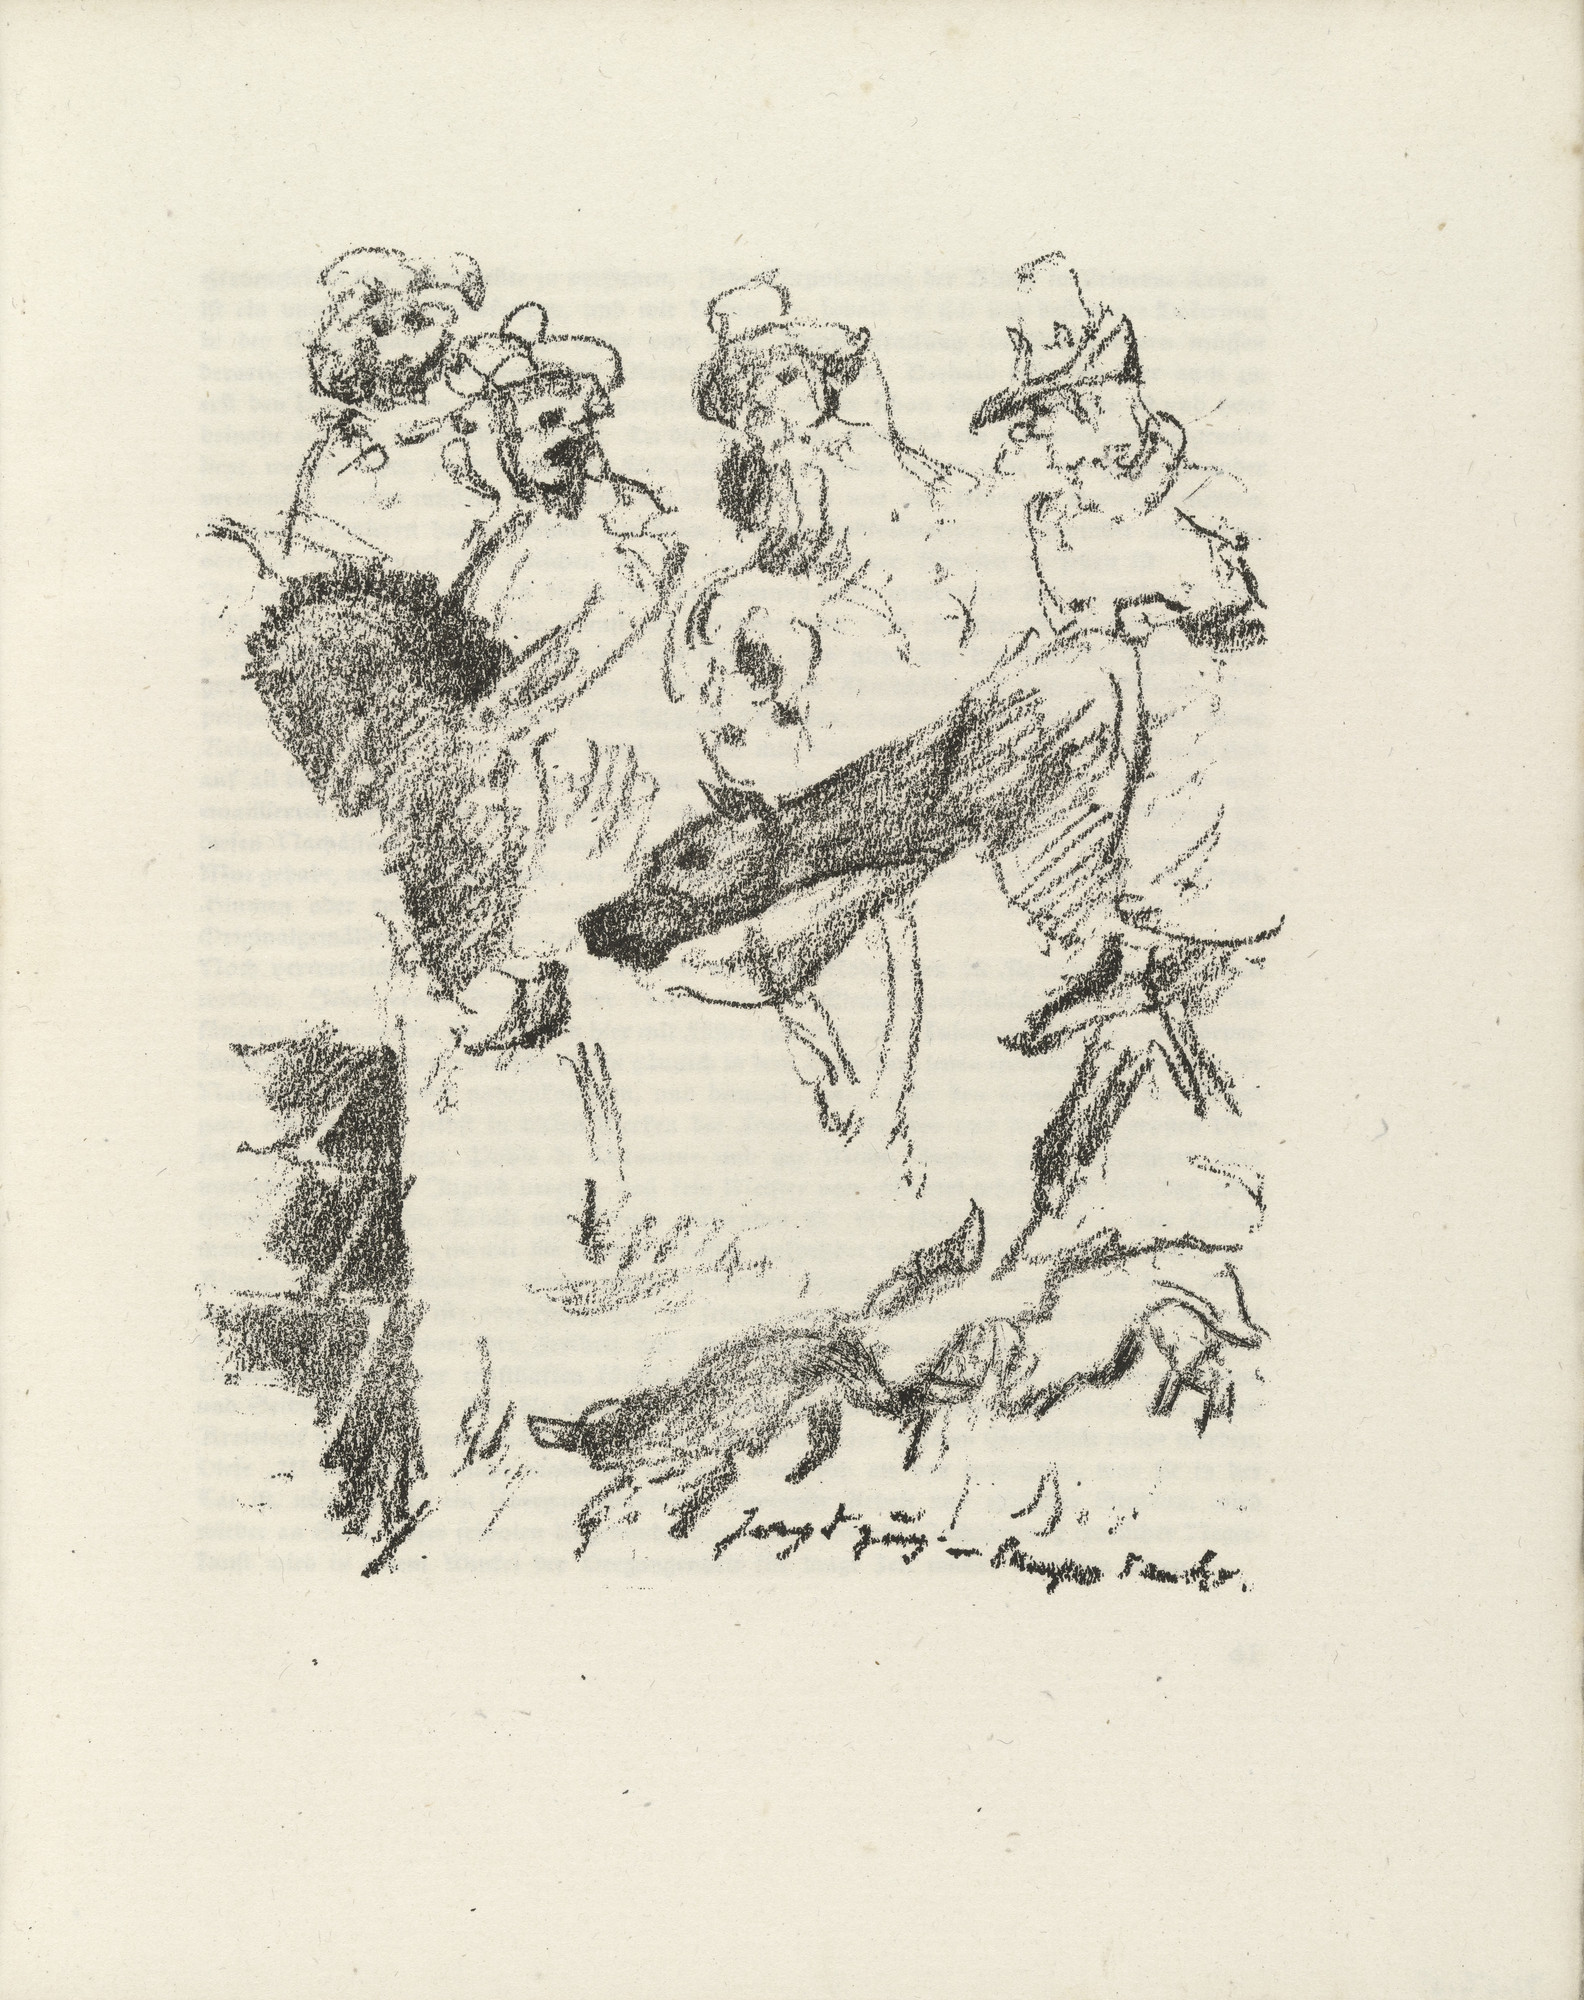 Lovis Corinth. Part of Fresco Painting from Pisa's Campo Santo (Teil eines Freskogemäldes vom Campo Santo zu Pisa) (plate facing page 60) from Gesammelte Schriften (Collected Writings). 1920